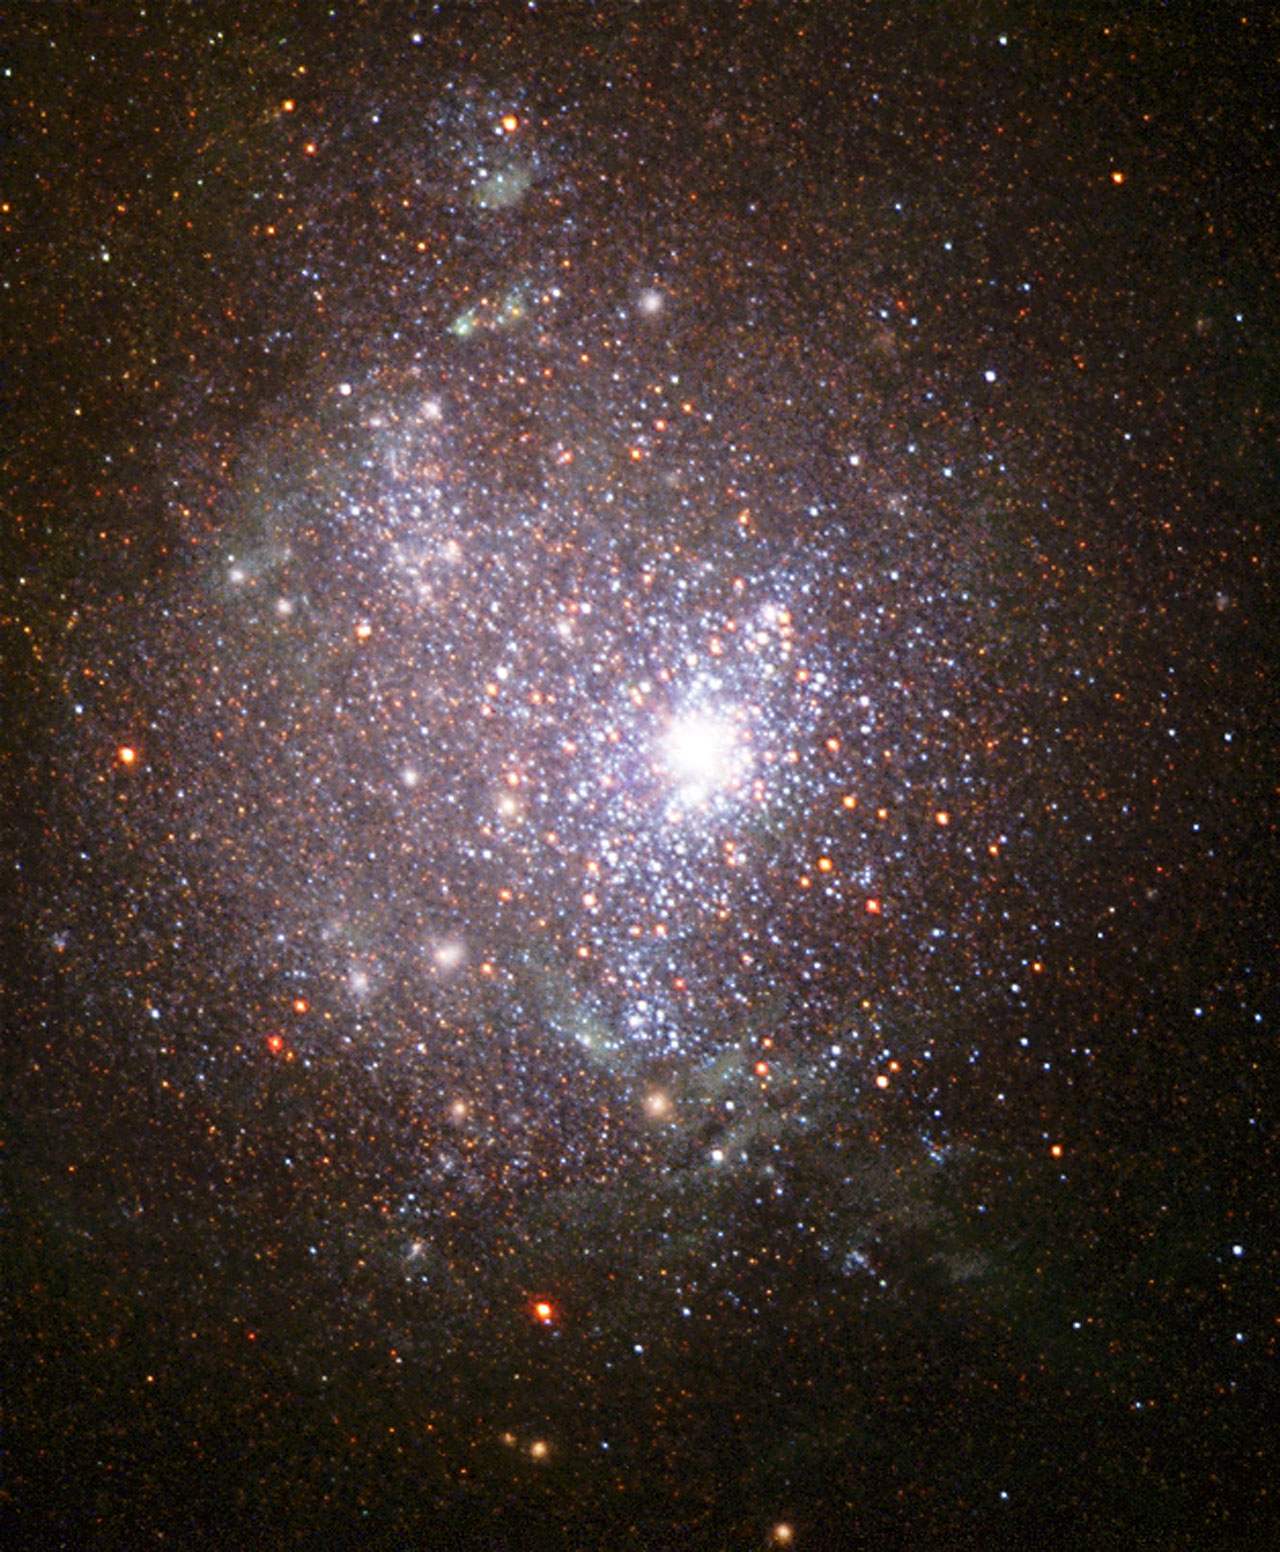 Blaze of stars in an old galaxy's core